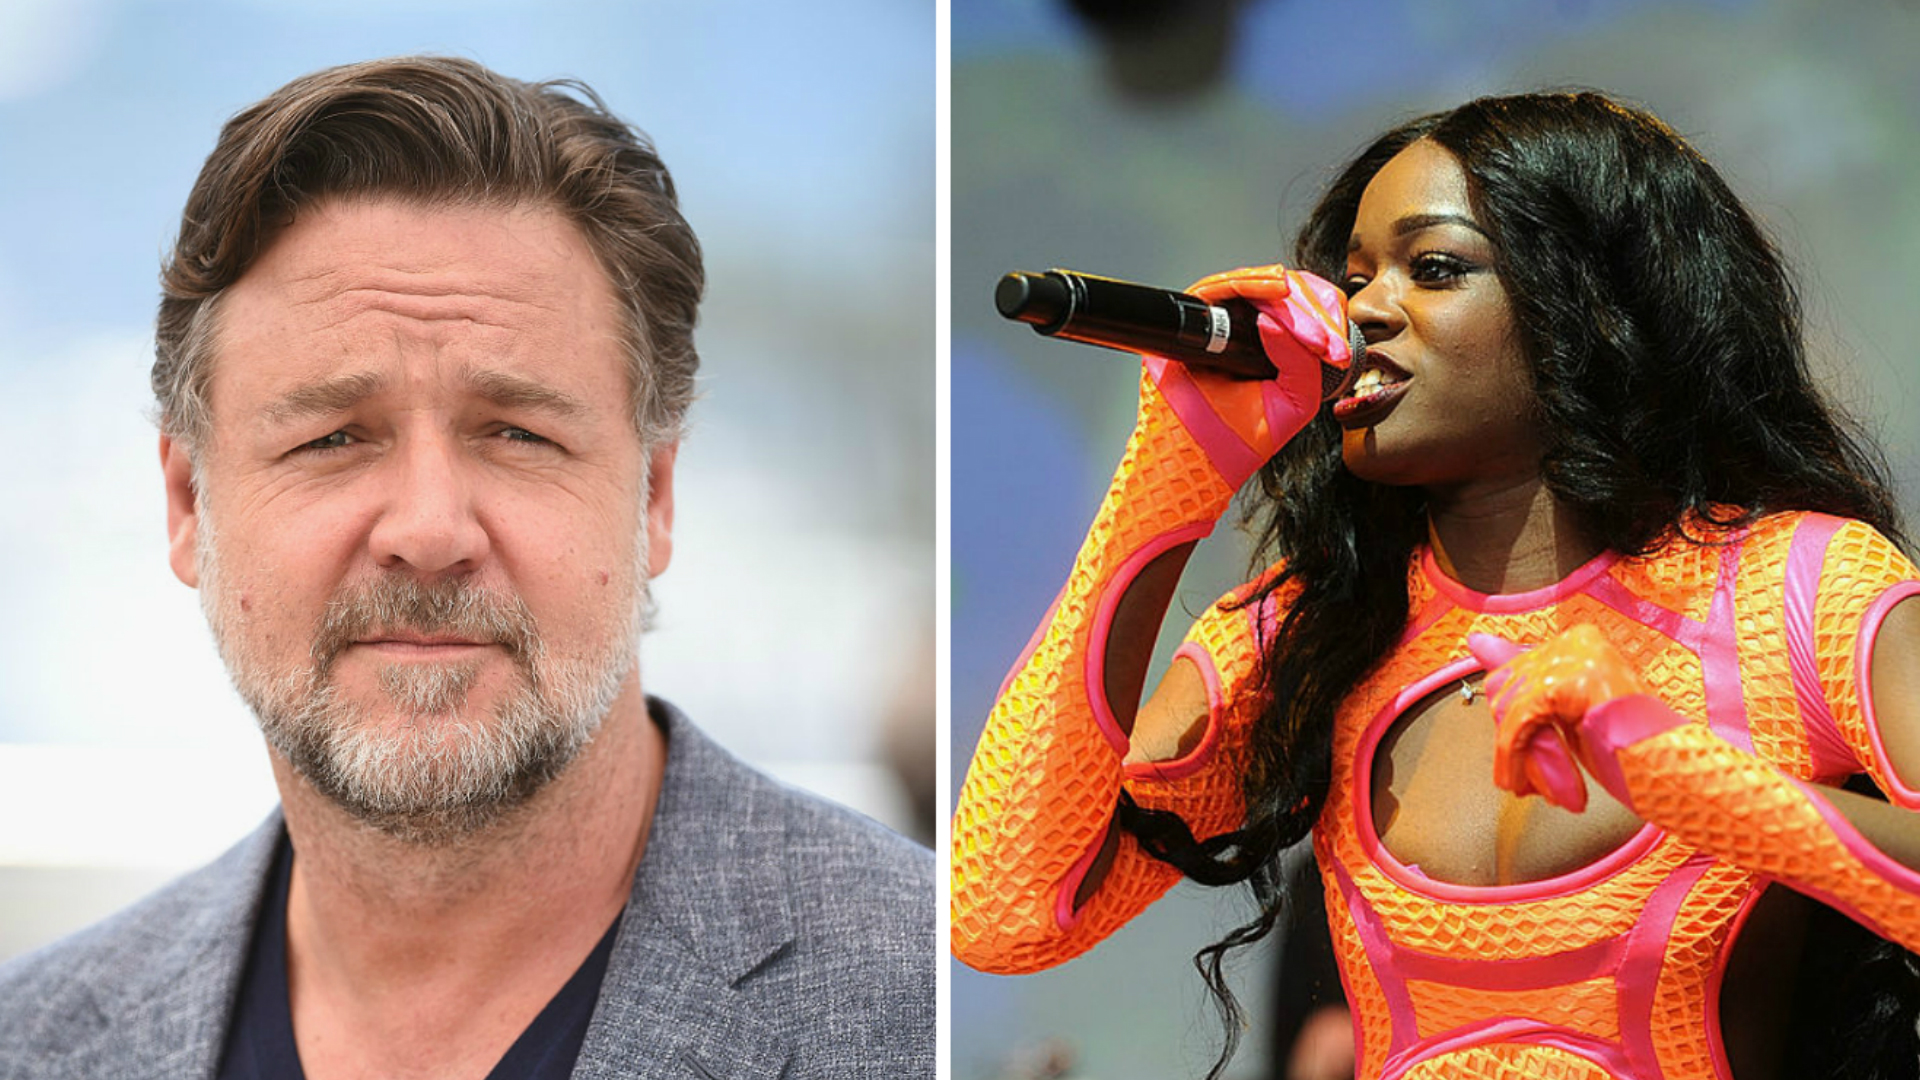 Azealia Banks and Russell Crowe